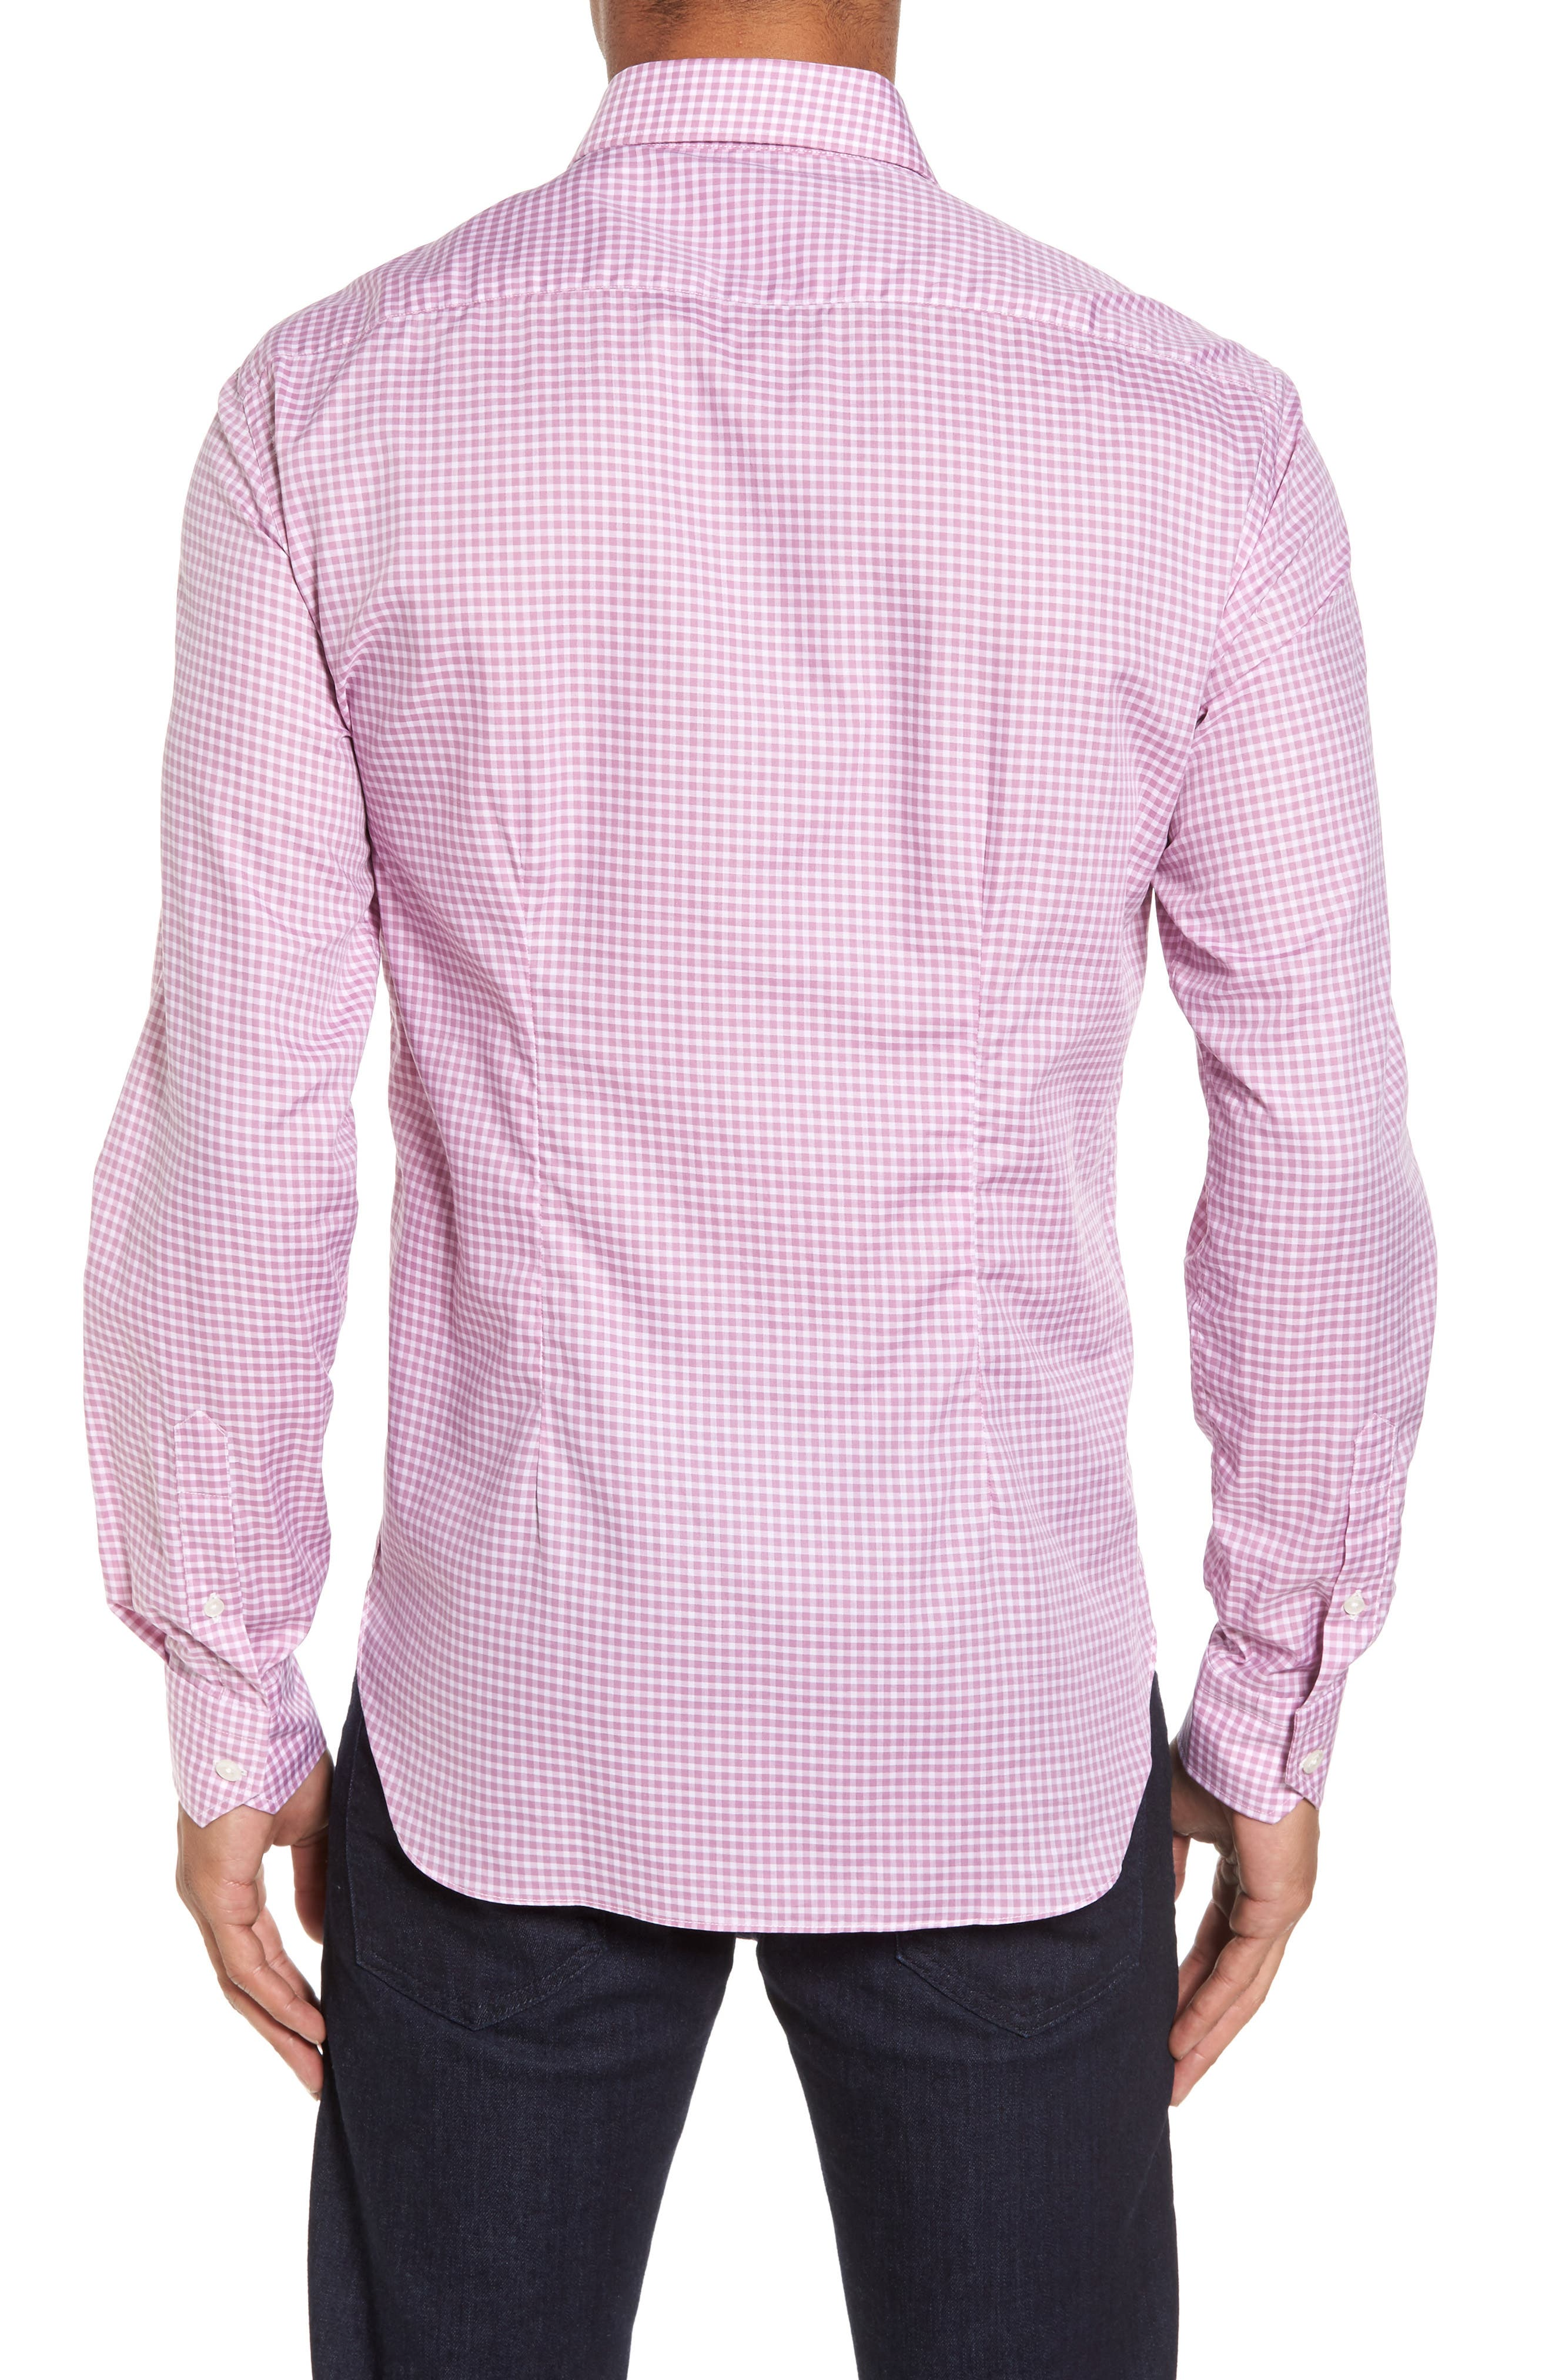 Alternate Image 2  - Culturata Slim Fit Check Twill Sport Shirt